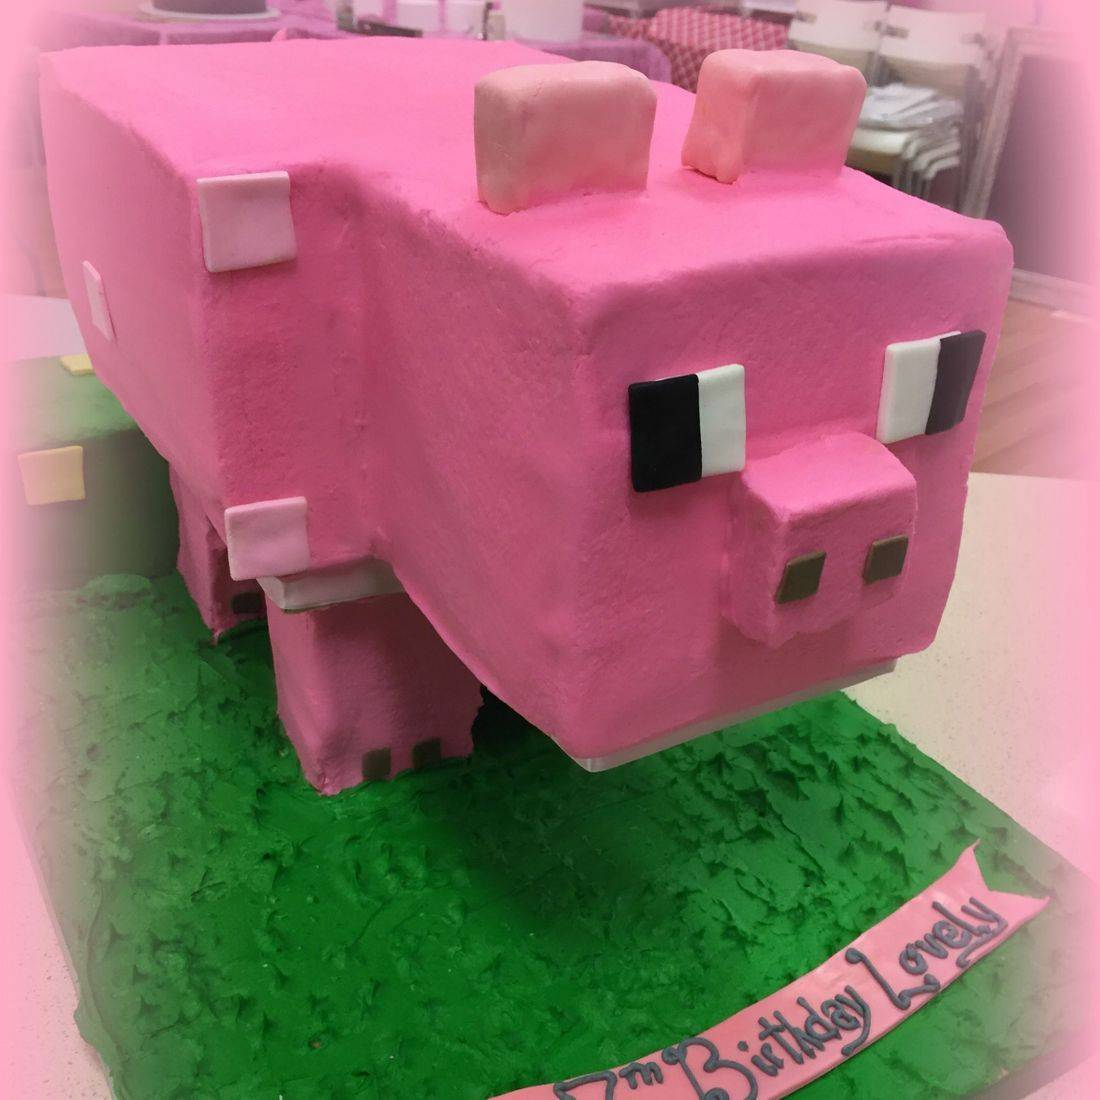 minecraft birthday cake pig cake creeper 3d minecraft cake